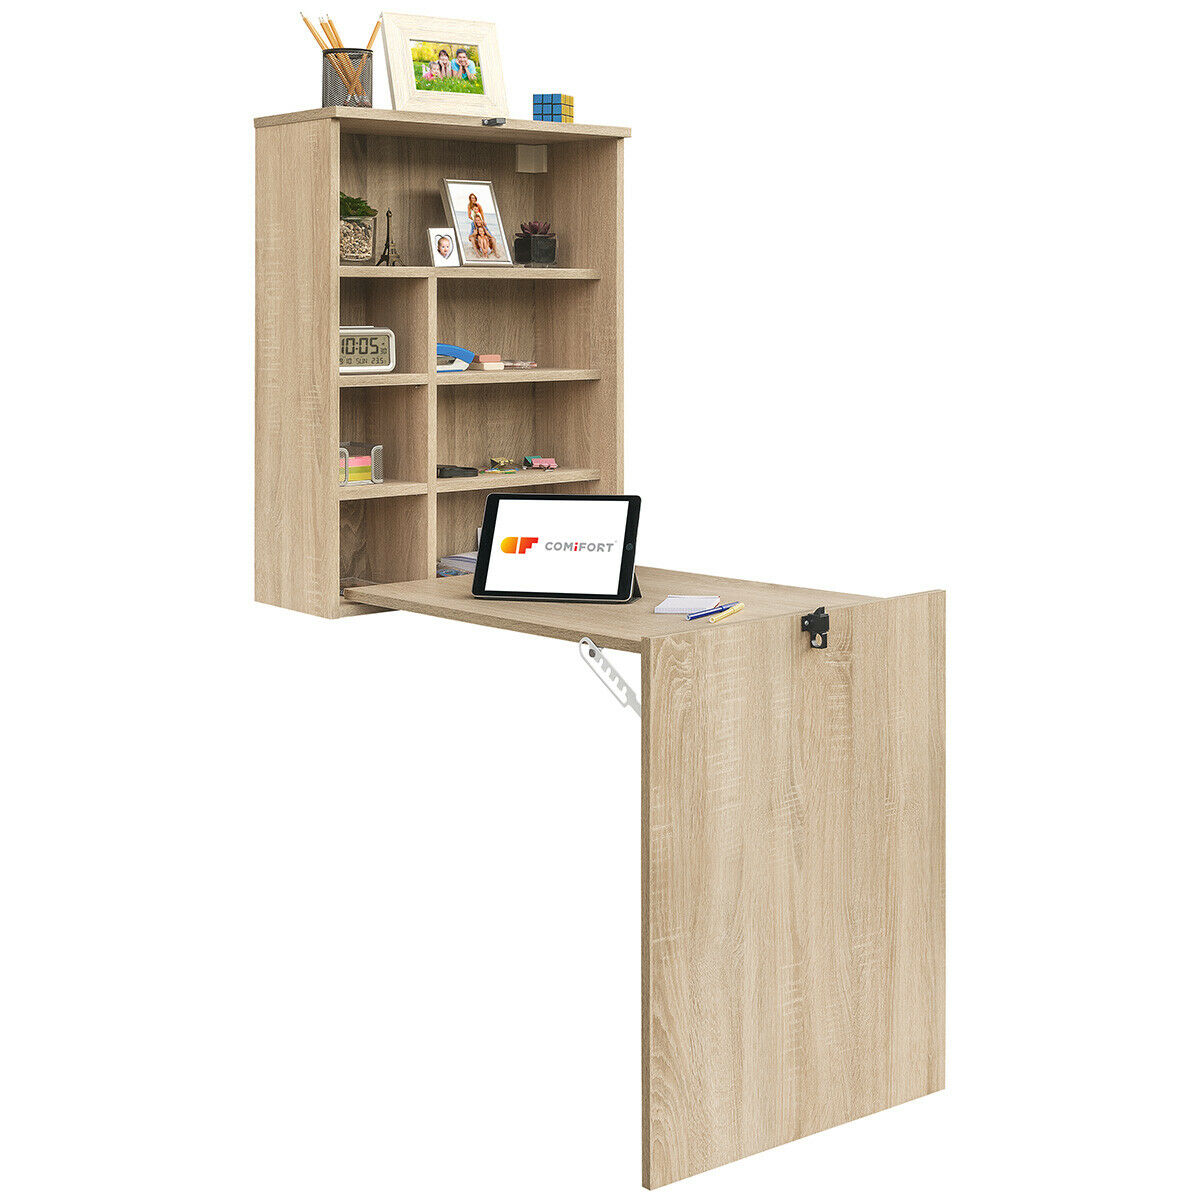 COMIFORT – Escritorio de Pared Plegable, Mesa Abatible Colgante de Pie estudio